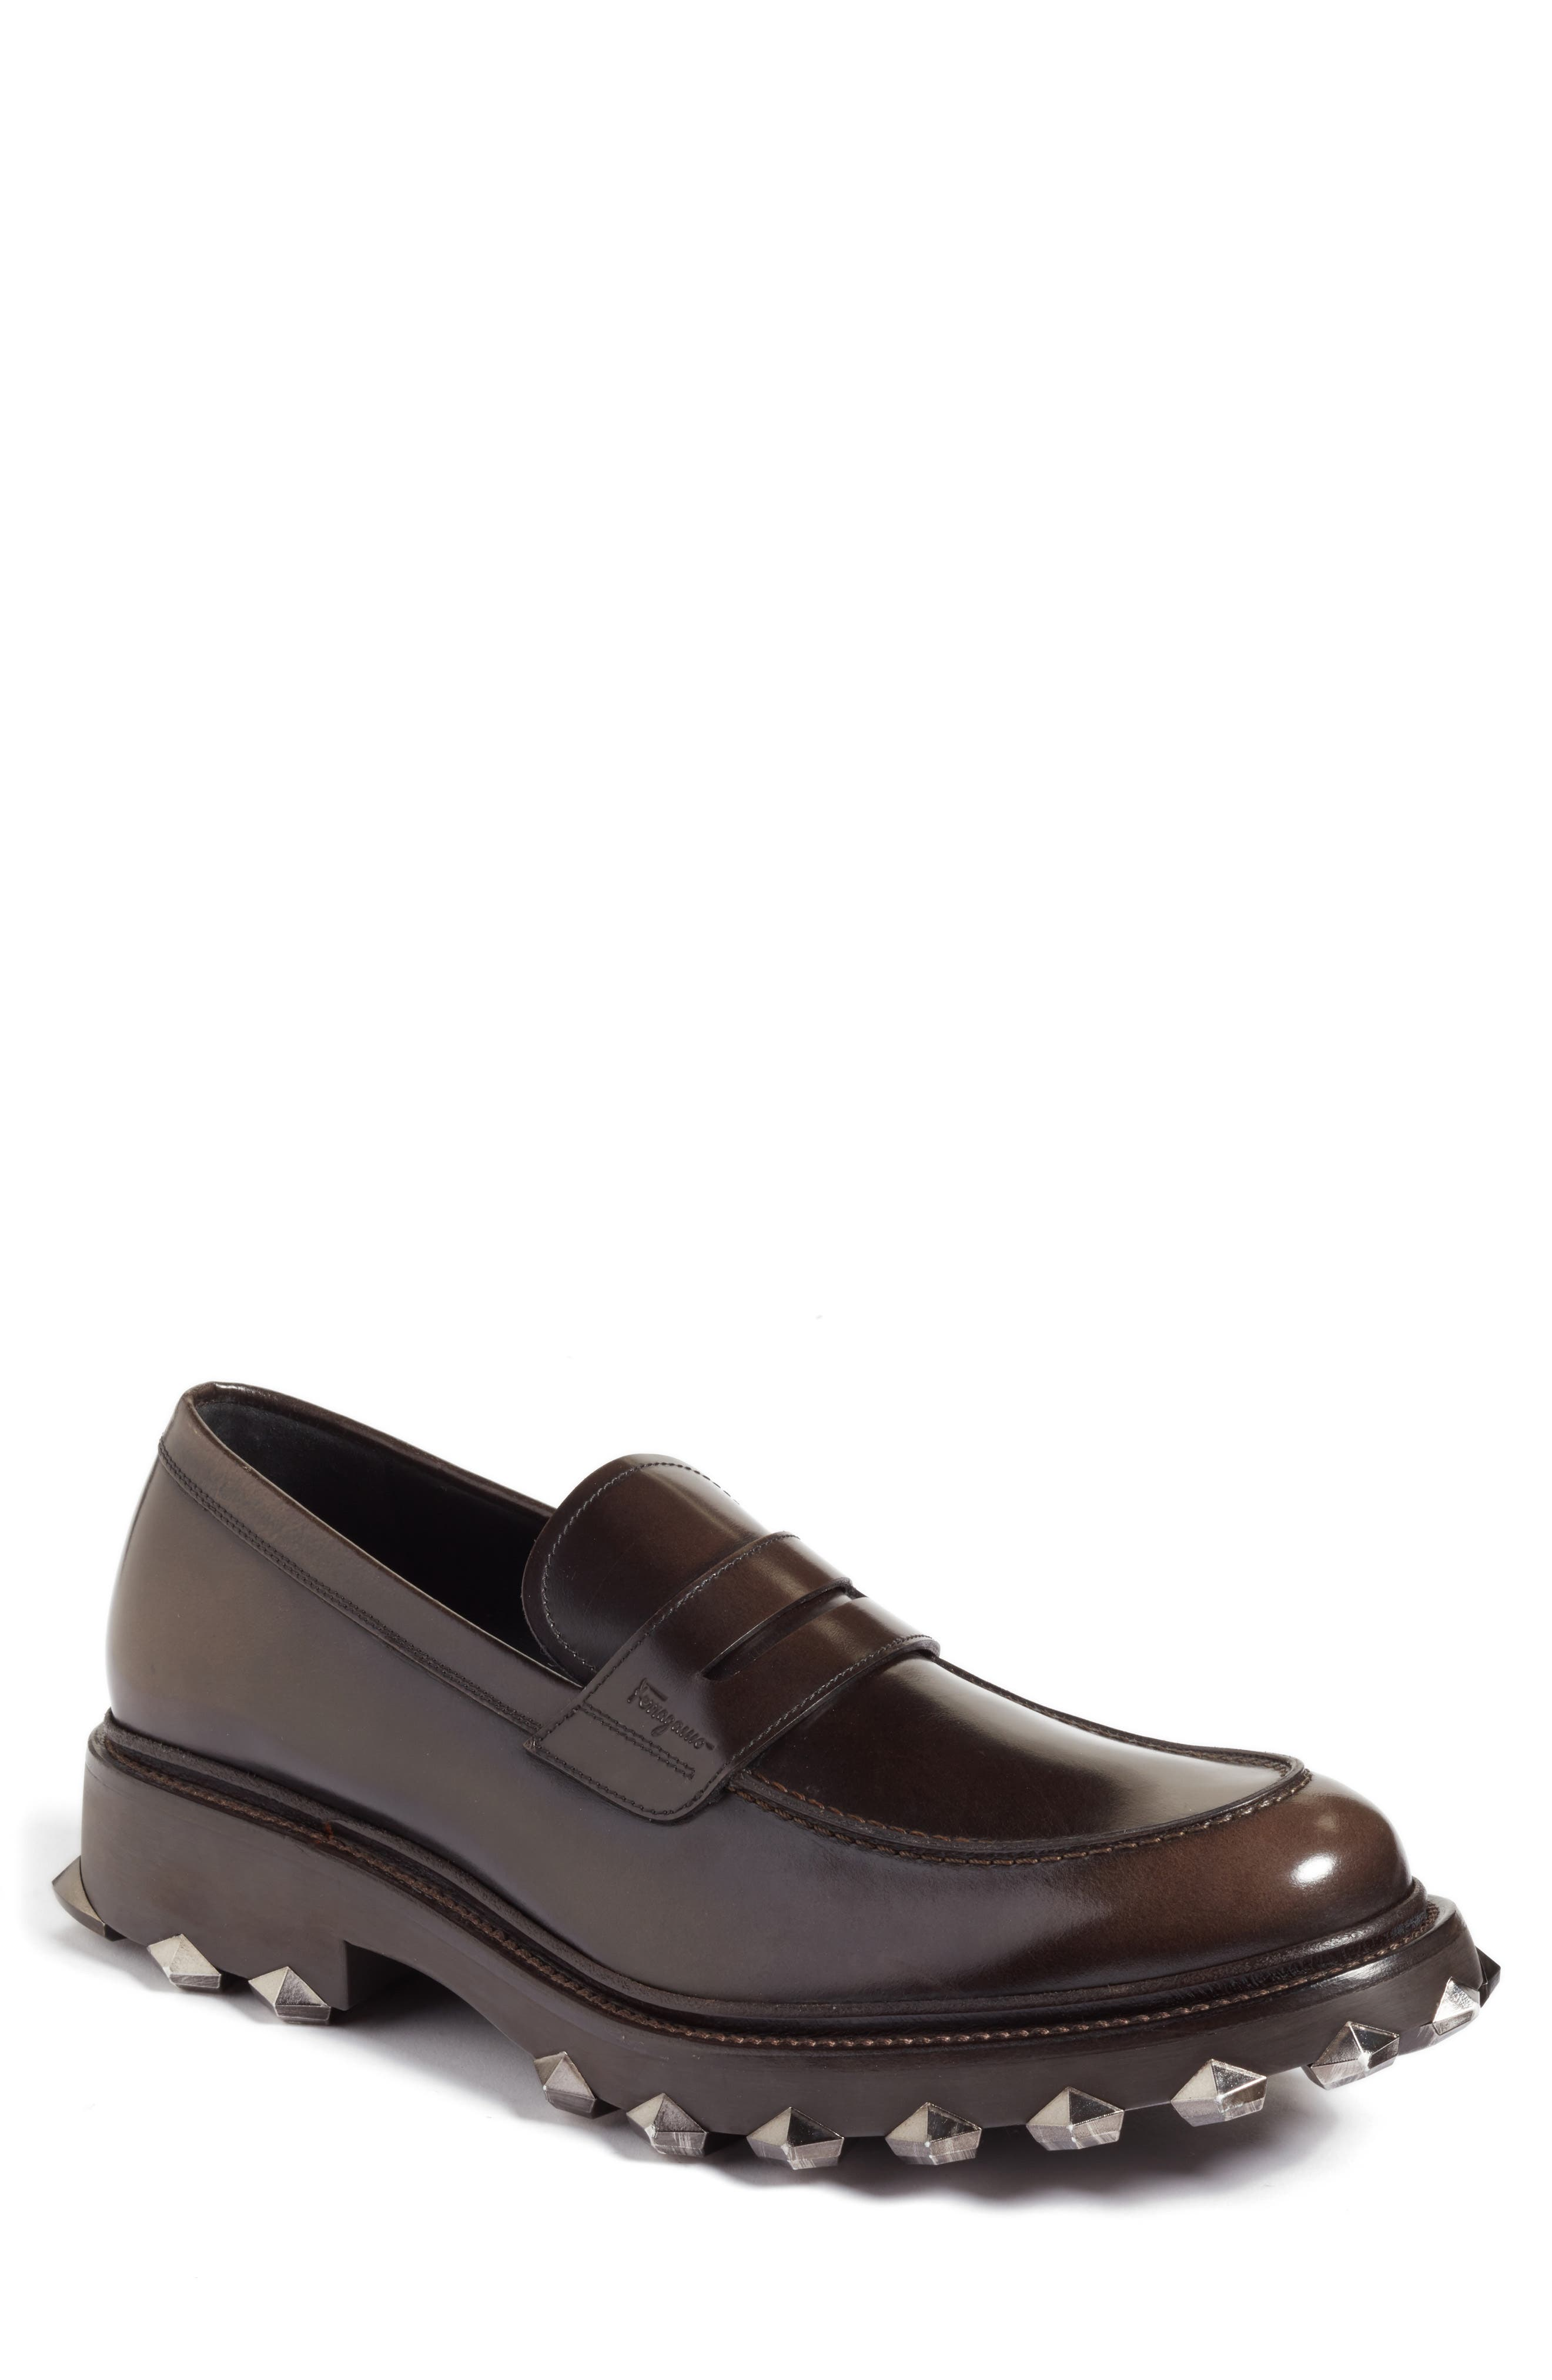 Penny Loafer,                             Main thumbnail 1, color,                             024